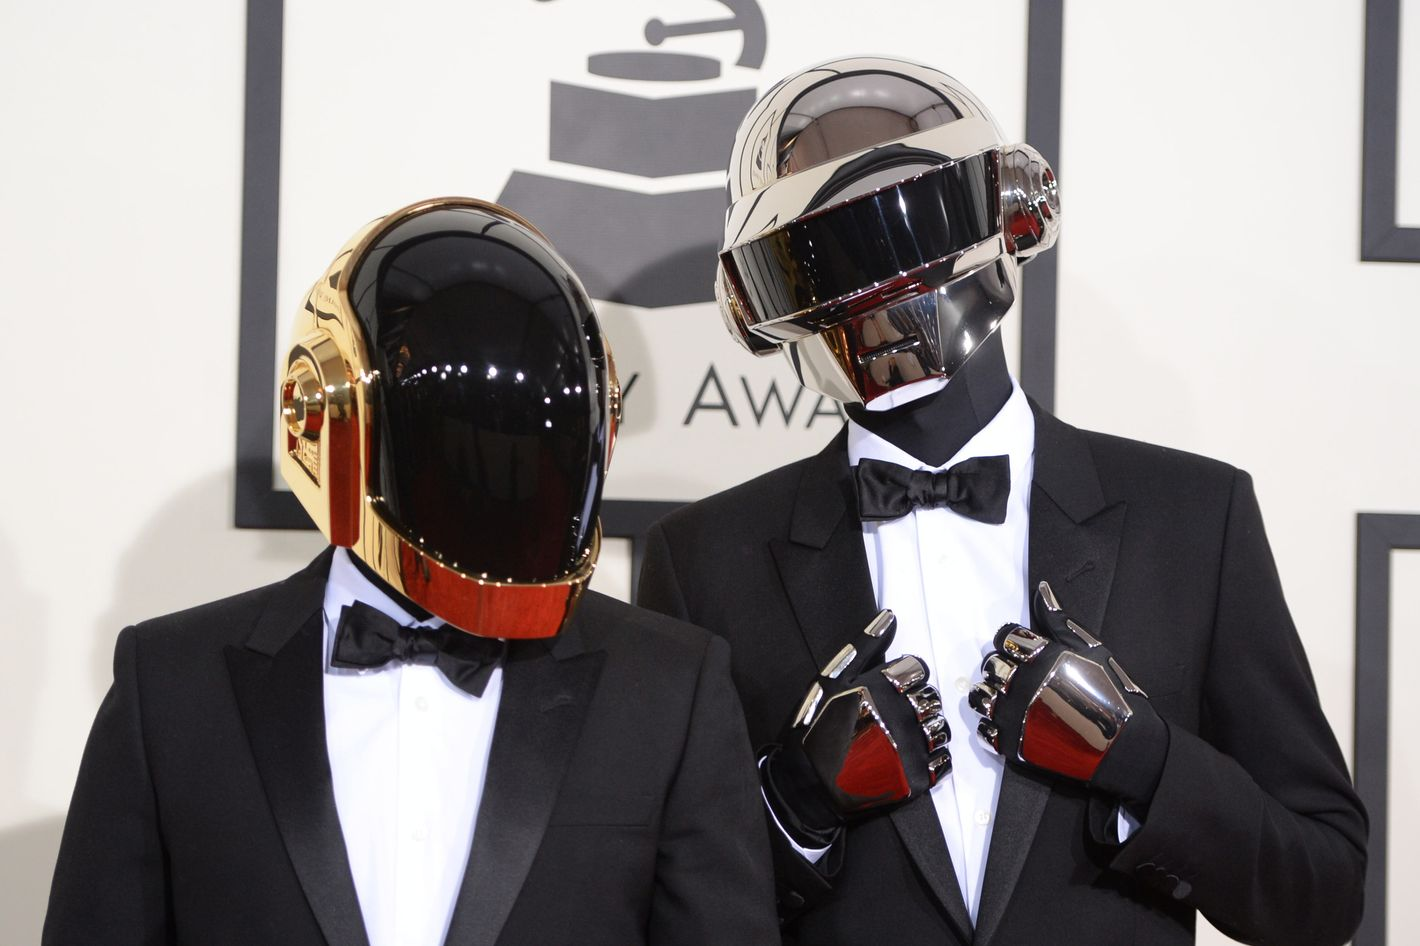 Daft Punk S Faces Unveiled In Sculpture Sort Of